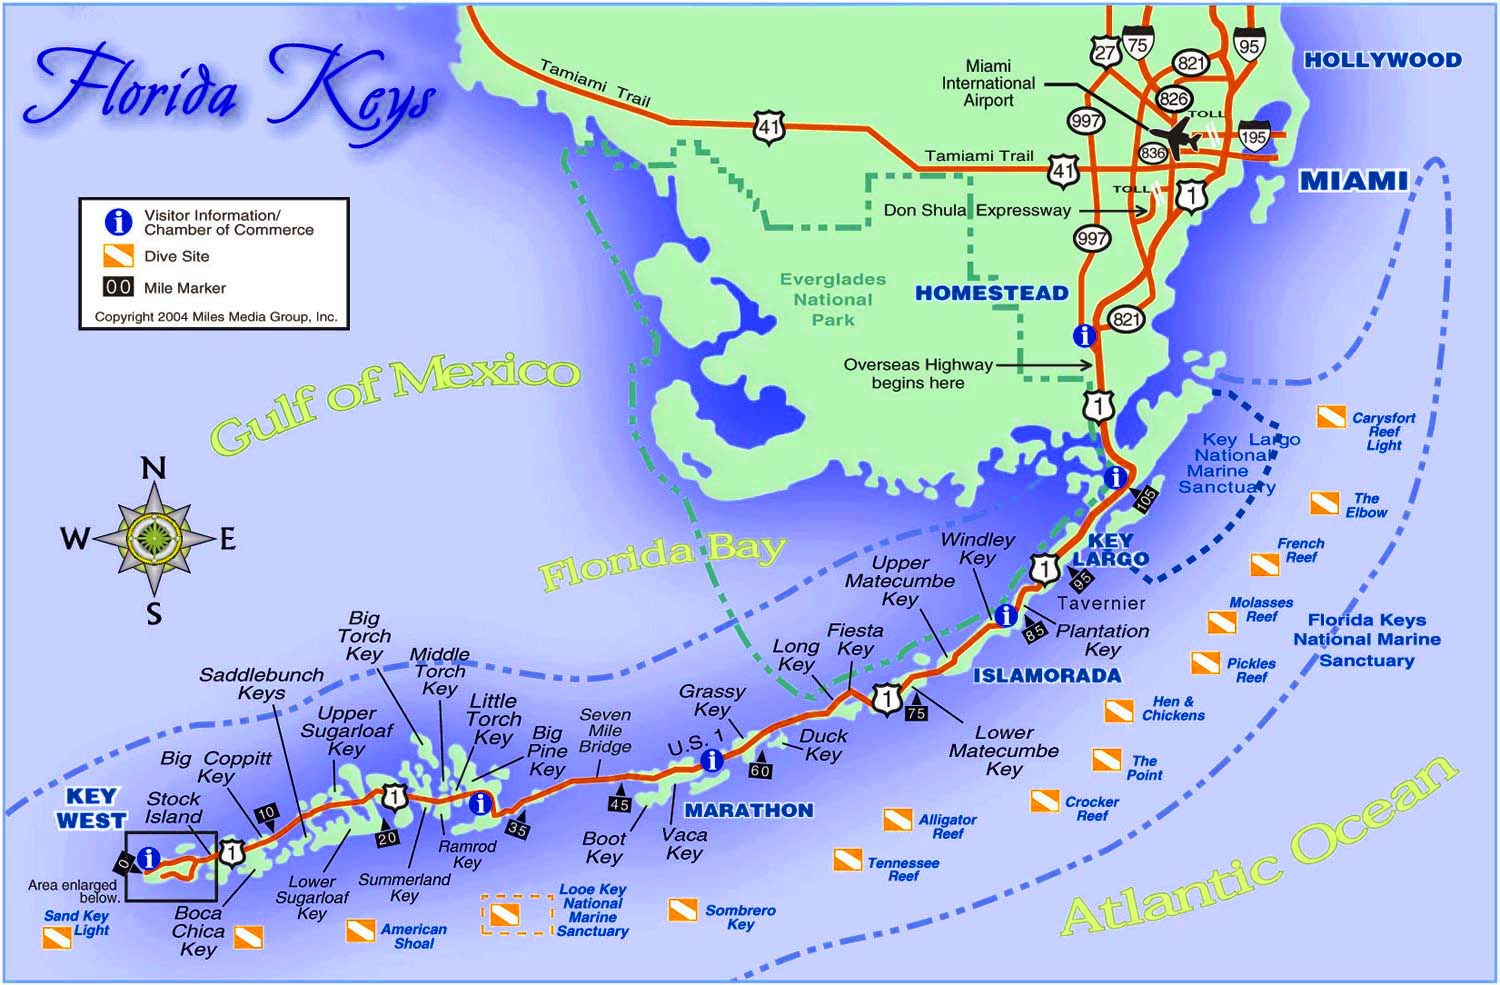 Best Florida Keys Beaches Map And Information - Florida Keys - Where Is Islamorada Florida On Map